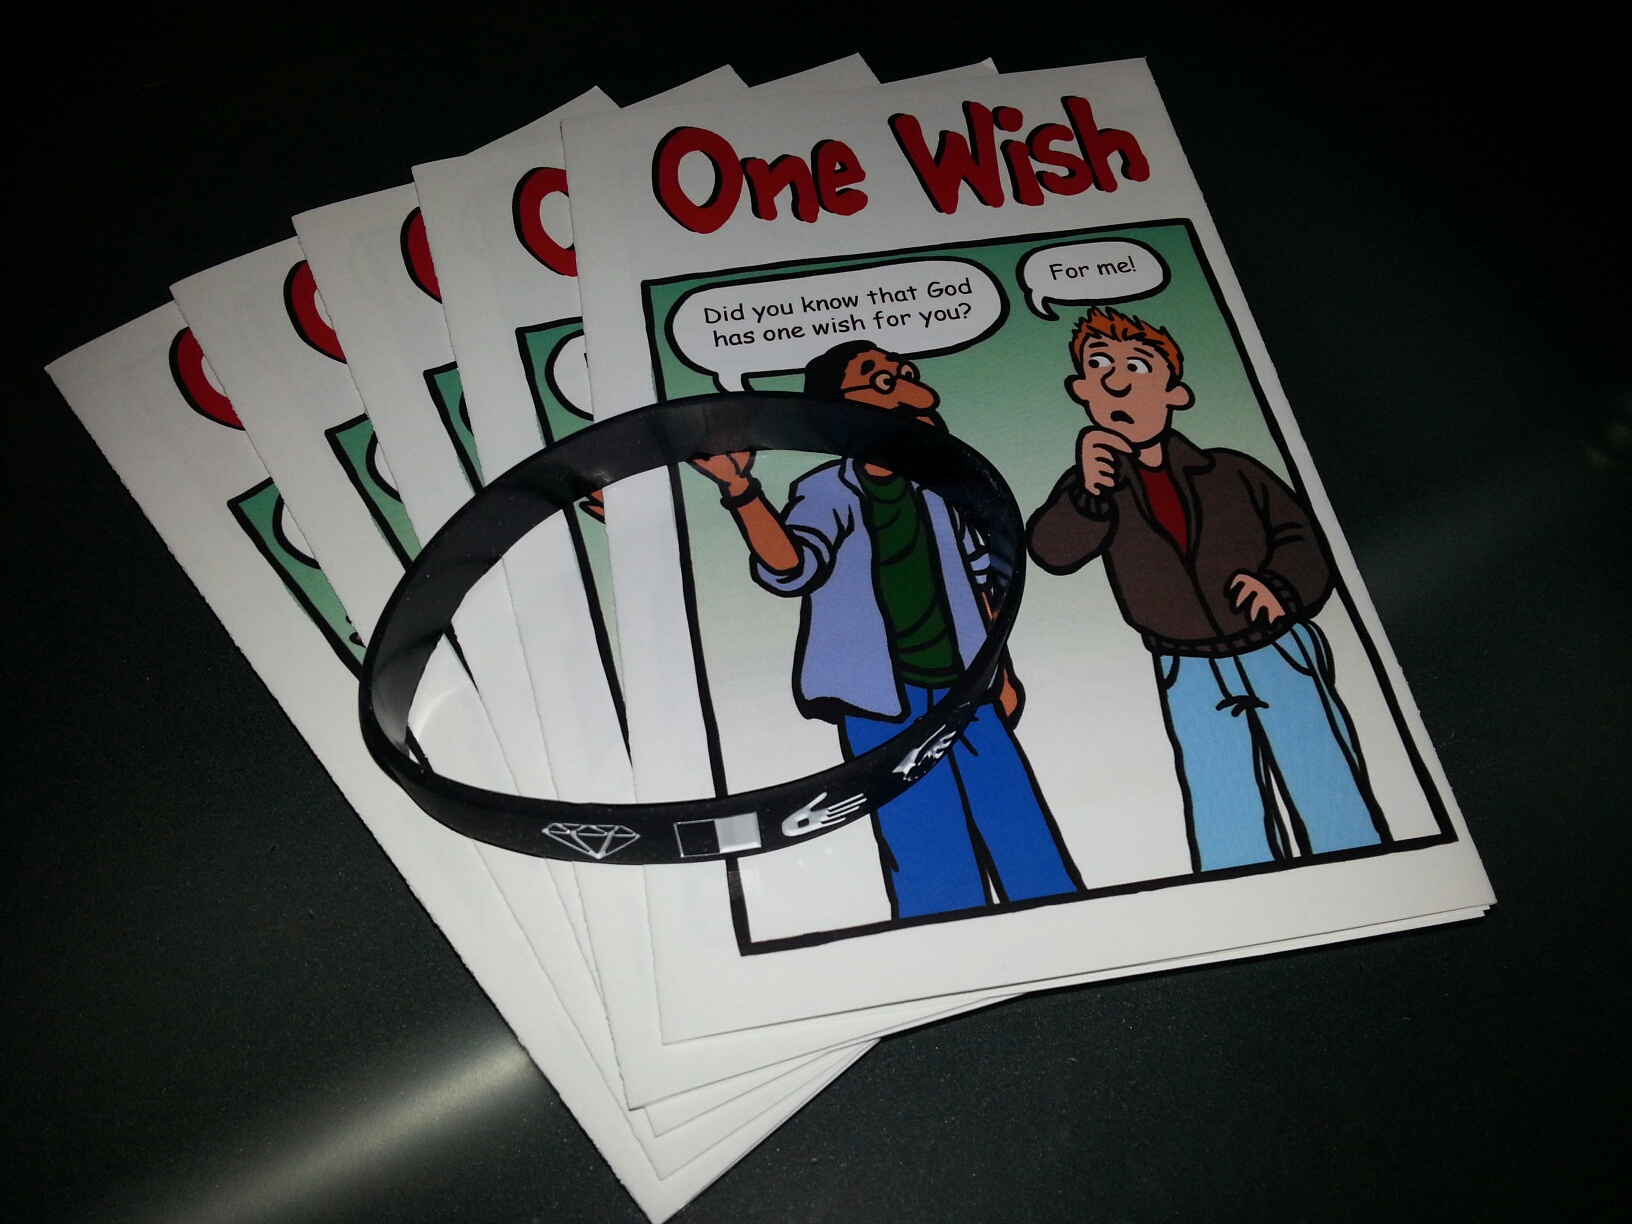 5 One Wish tracts and a Wristband = $2.00